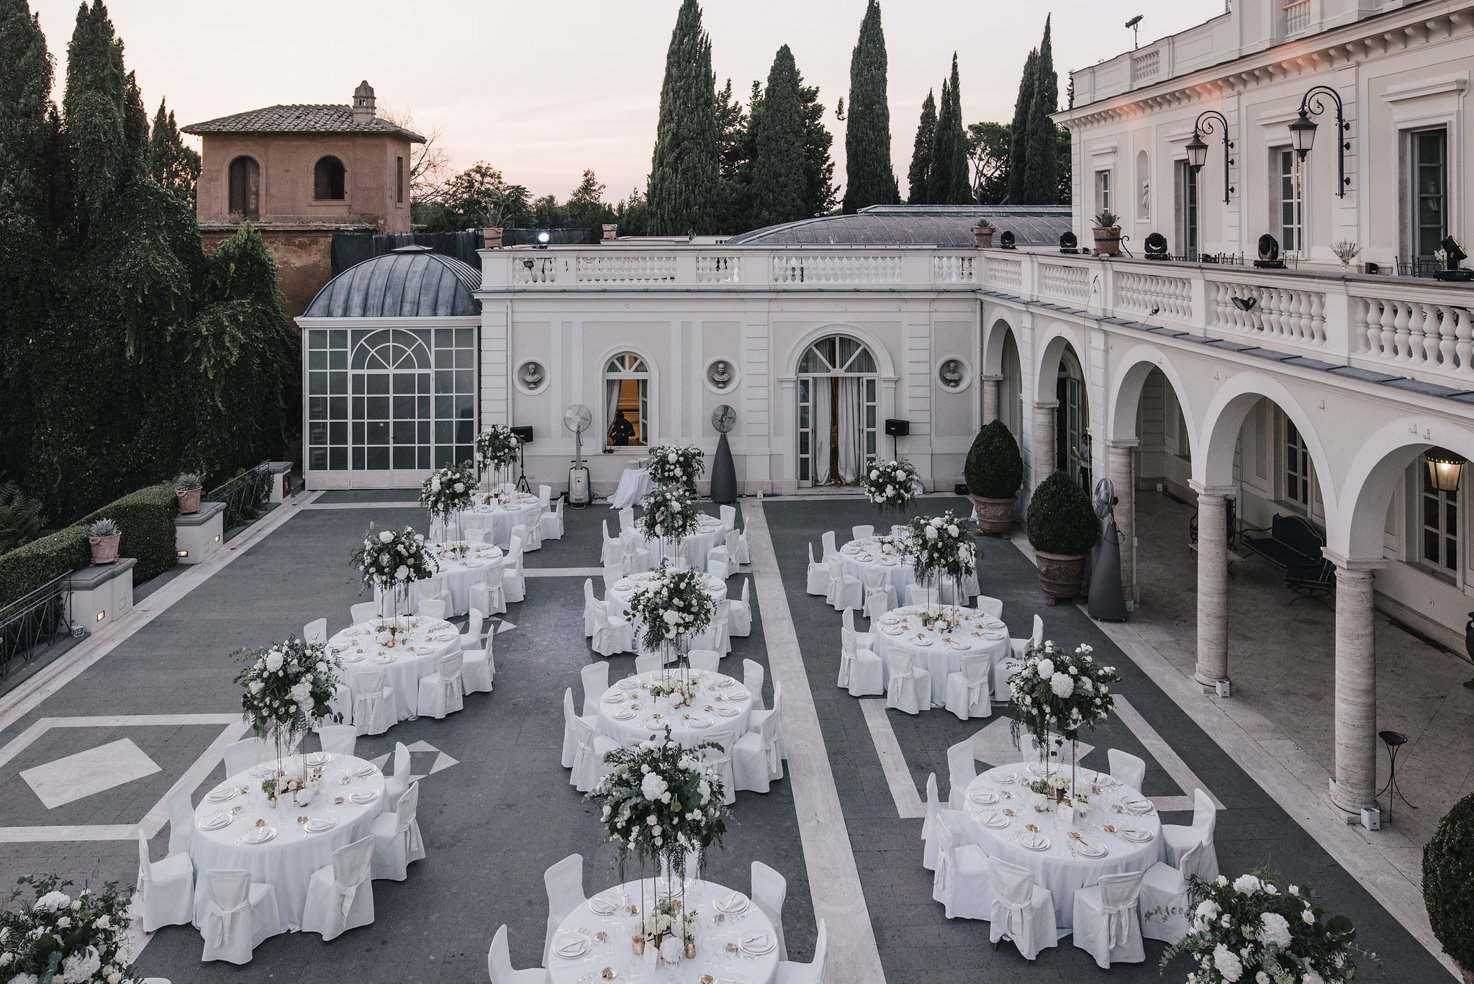 Overview of the wedding reception at Villa Miani, Rome